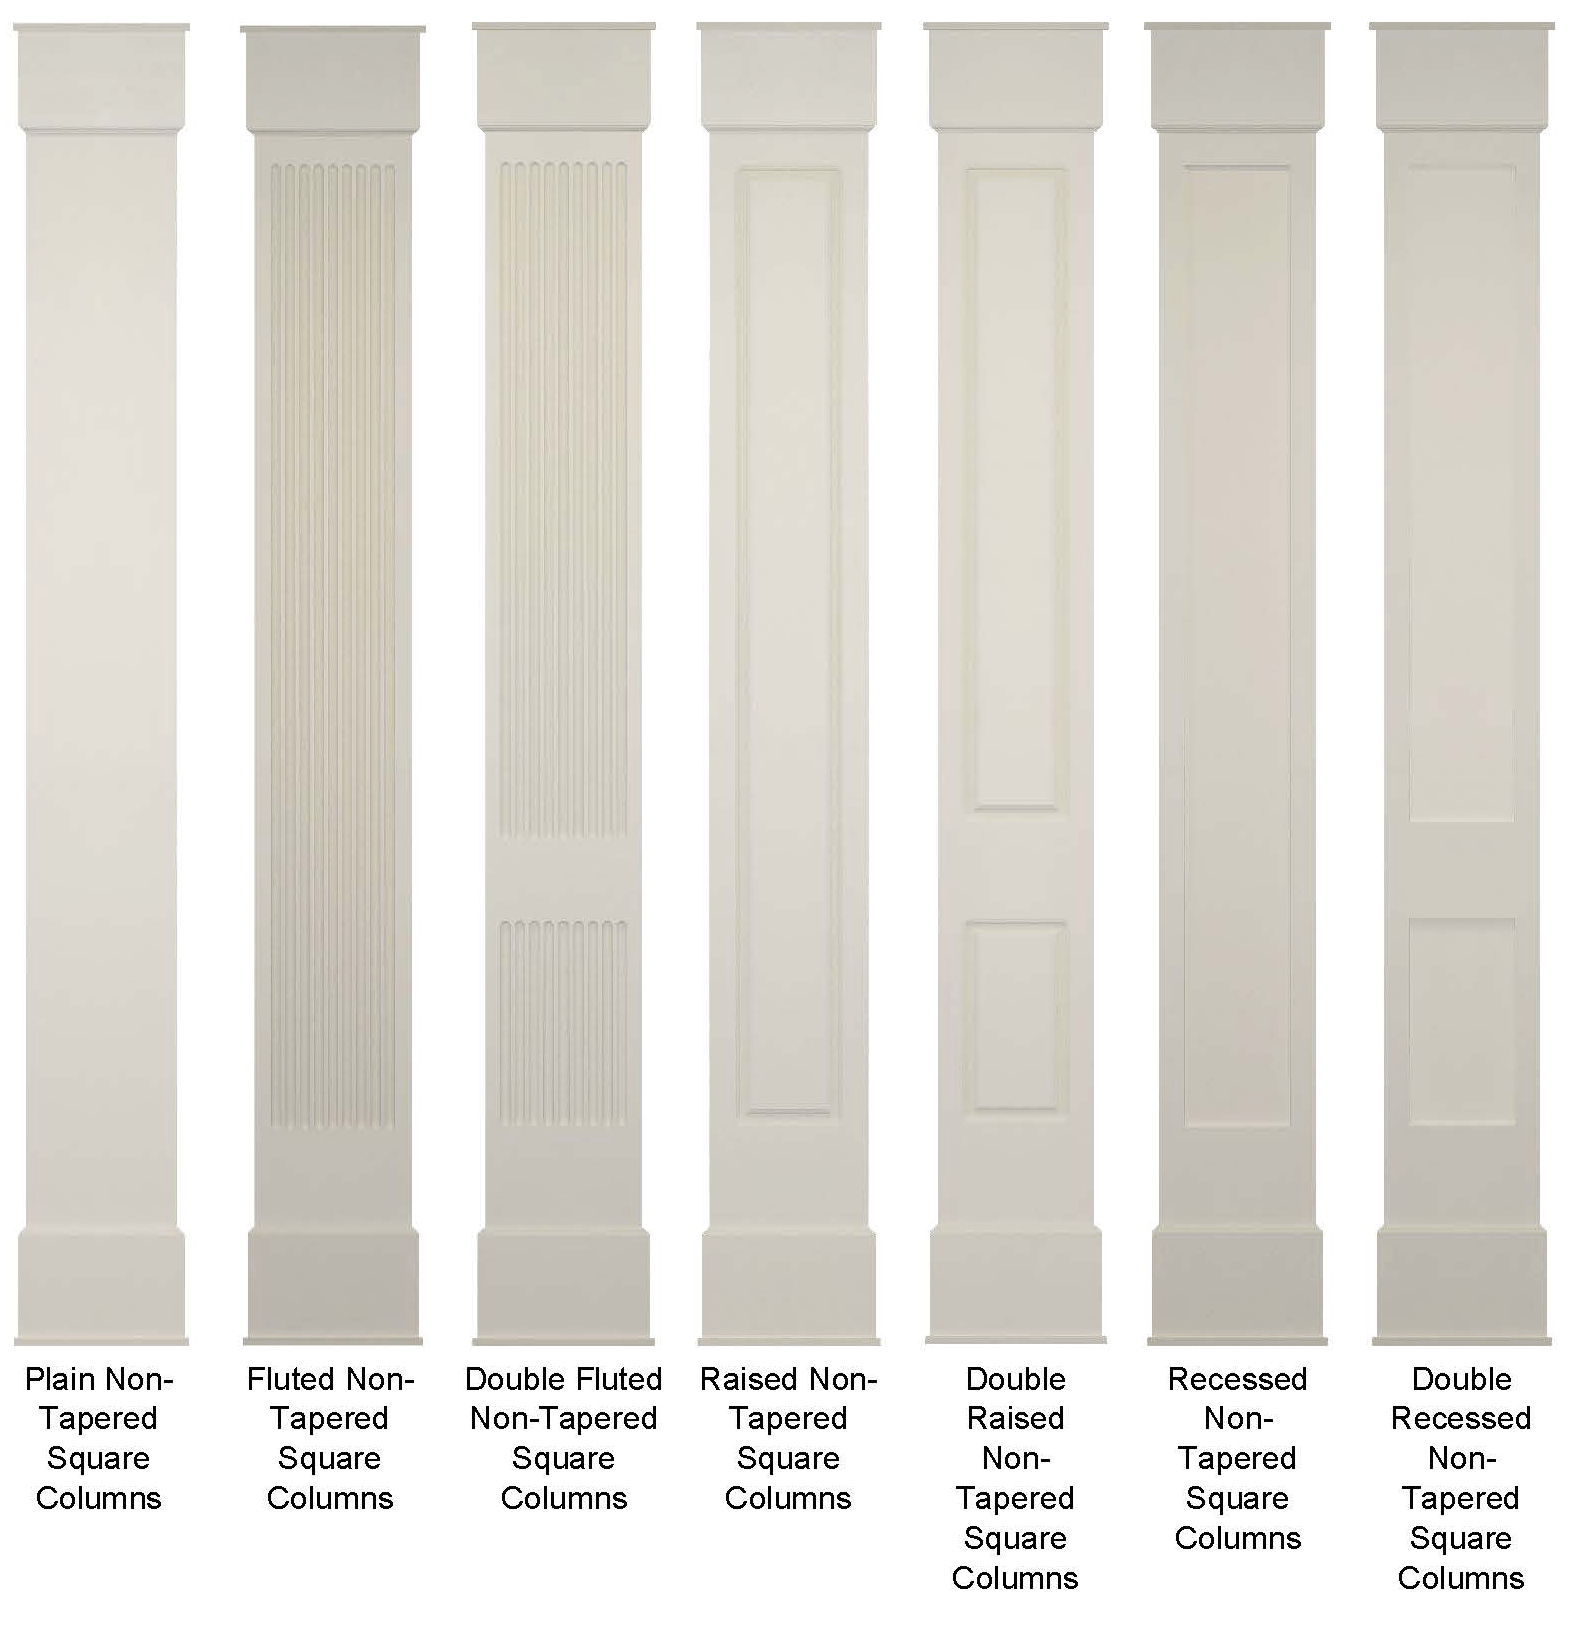 pvc-non-tapered-wraps